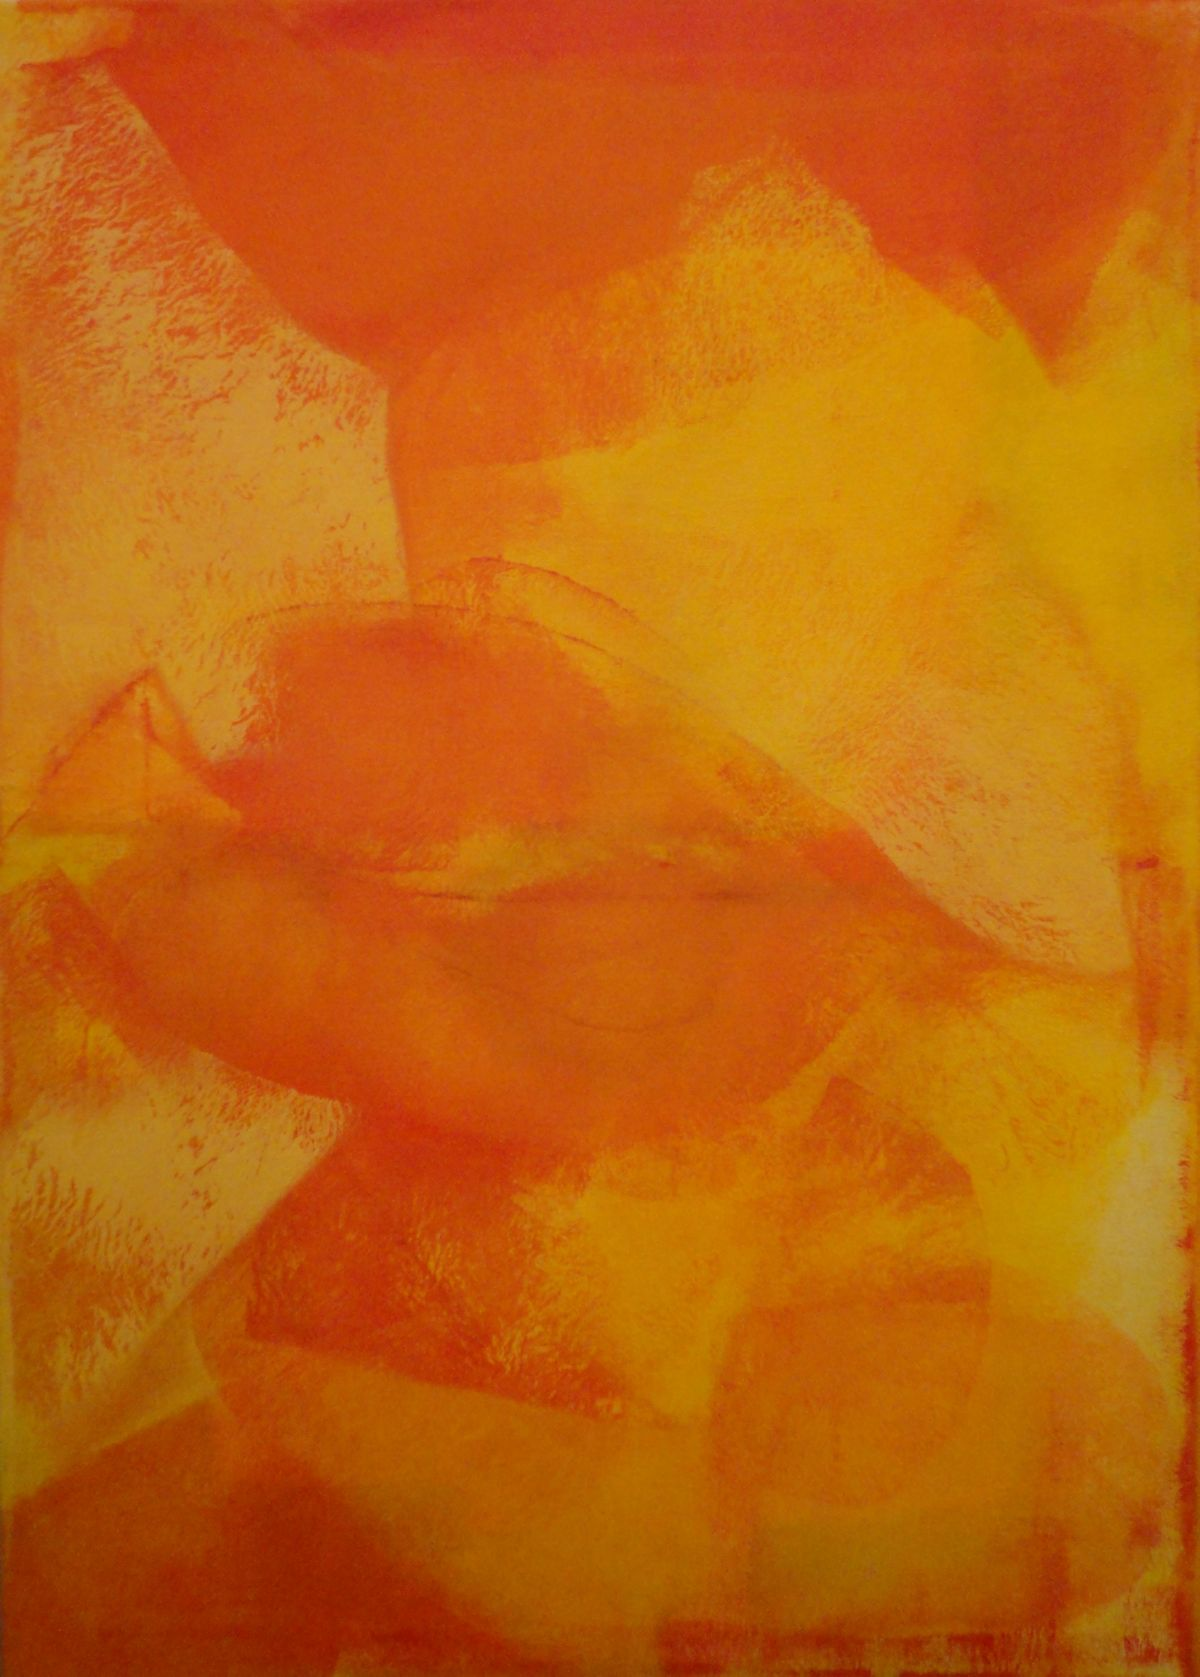 Uros Paternu 2013 Untitled 3 artwork by Uros Paternu - art listed for sale on Artplode